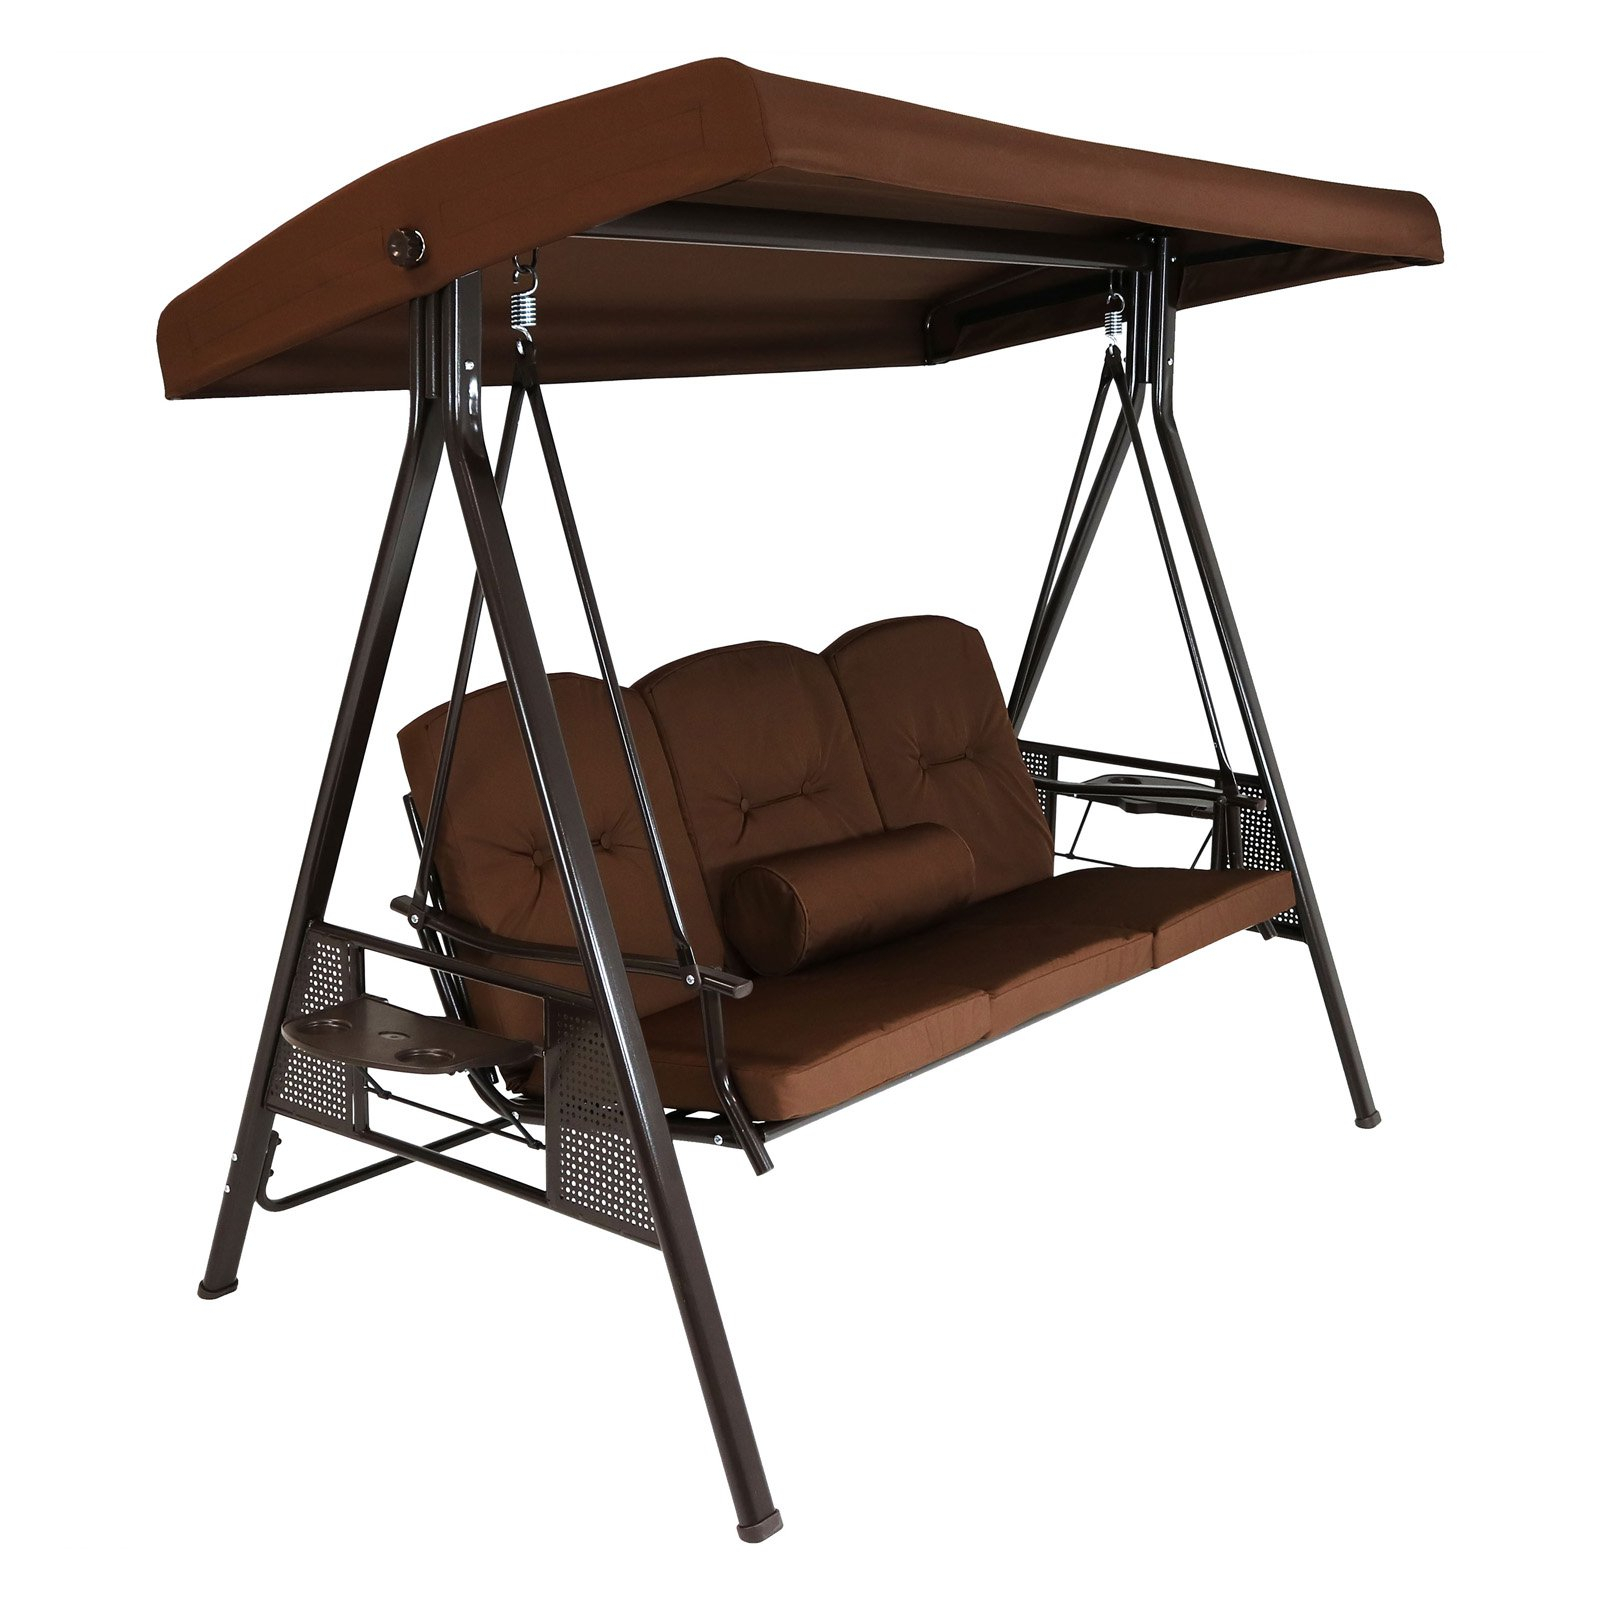 Sunnydaze Decor 3 Person Adjustable Tilt Canopy Patio Swing Pertaining To Outdoor Pvc Coated Polyester Porch Swings With Stand (View 5 of 25)